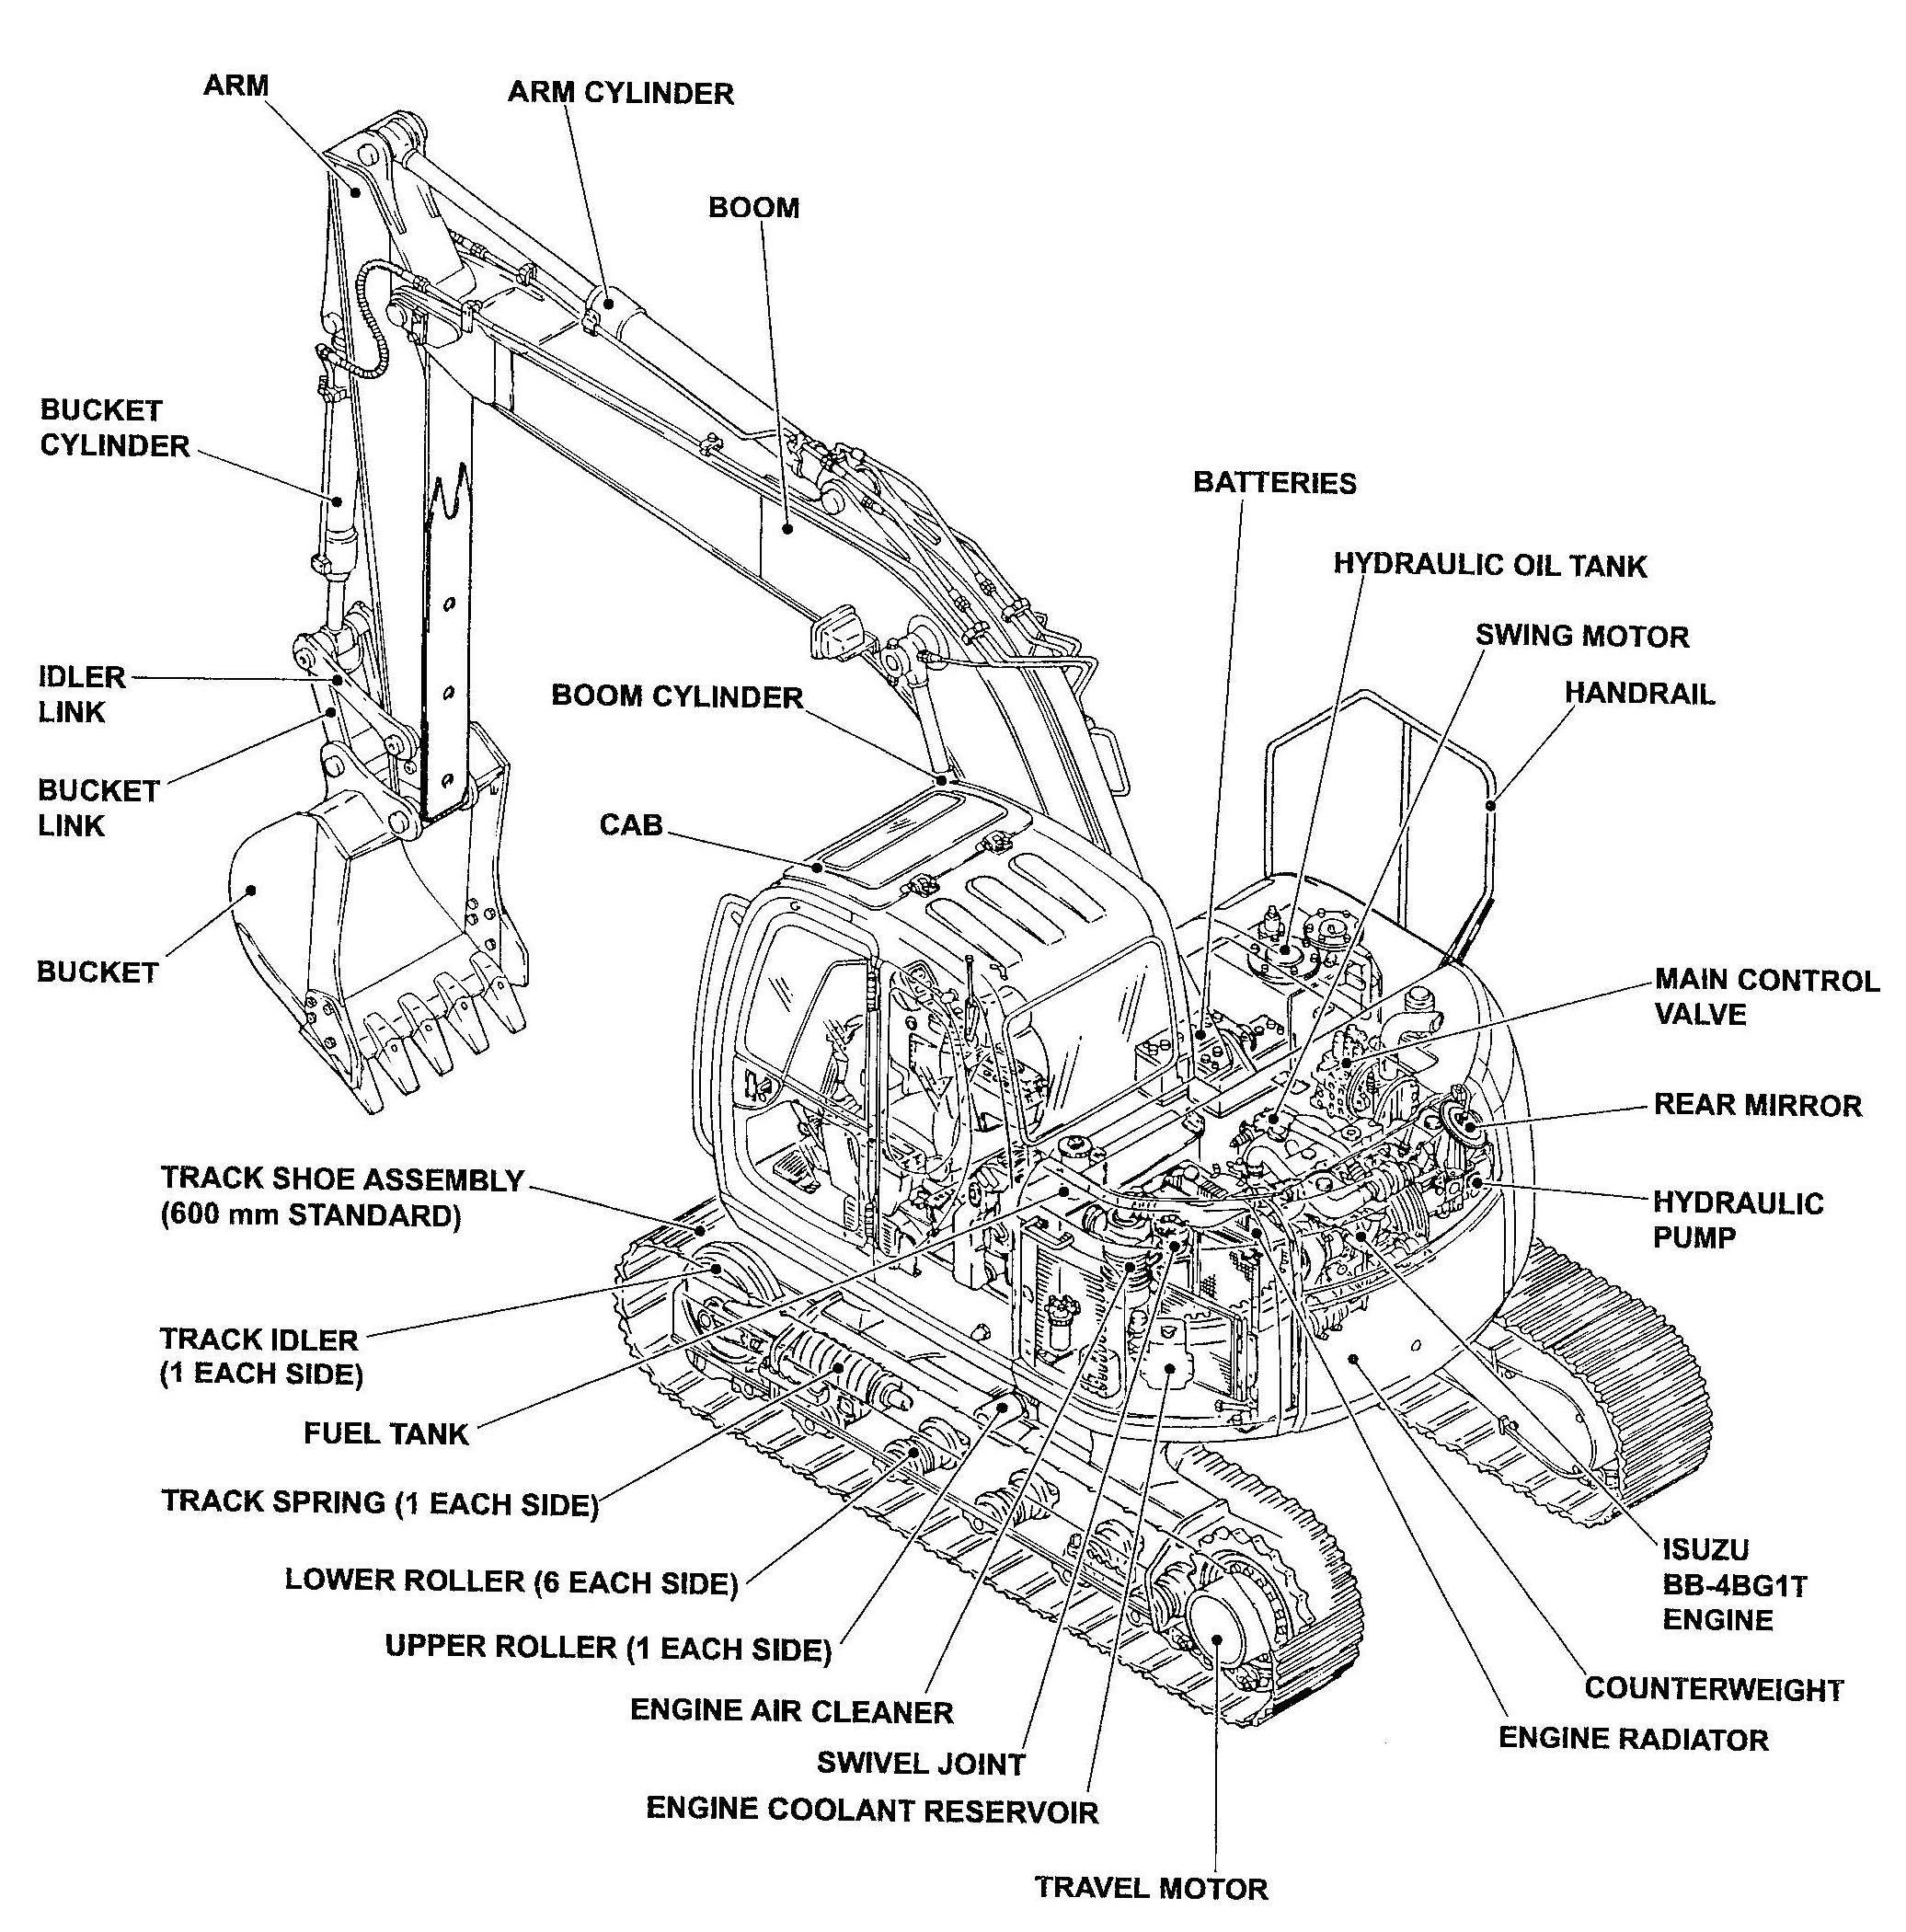 Image Result For Crawler Excavator Diagram